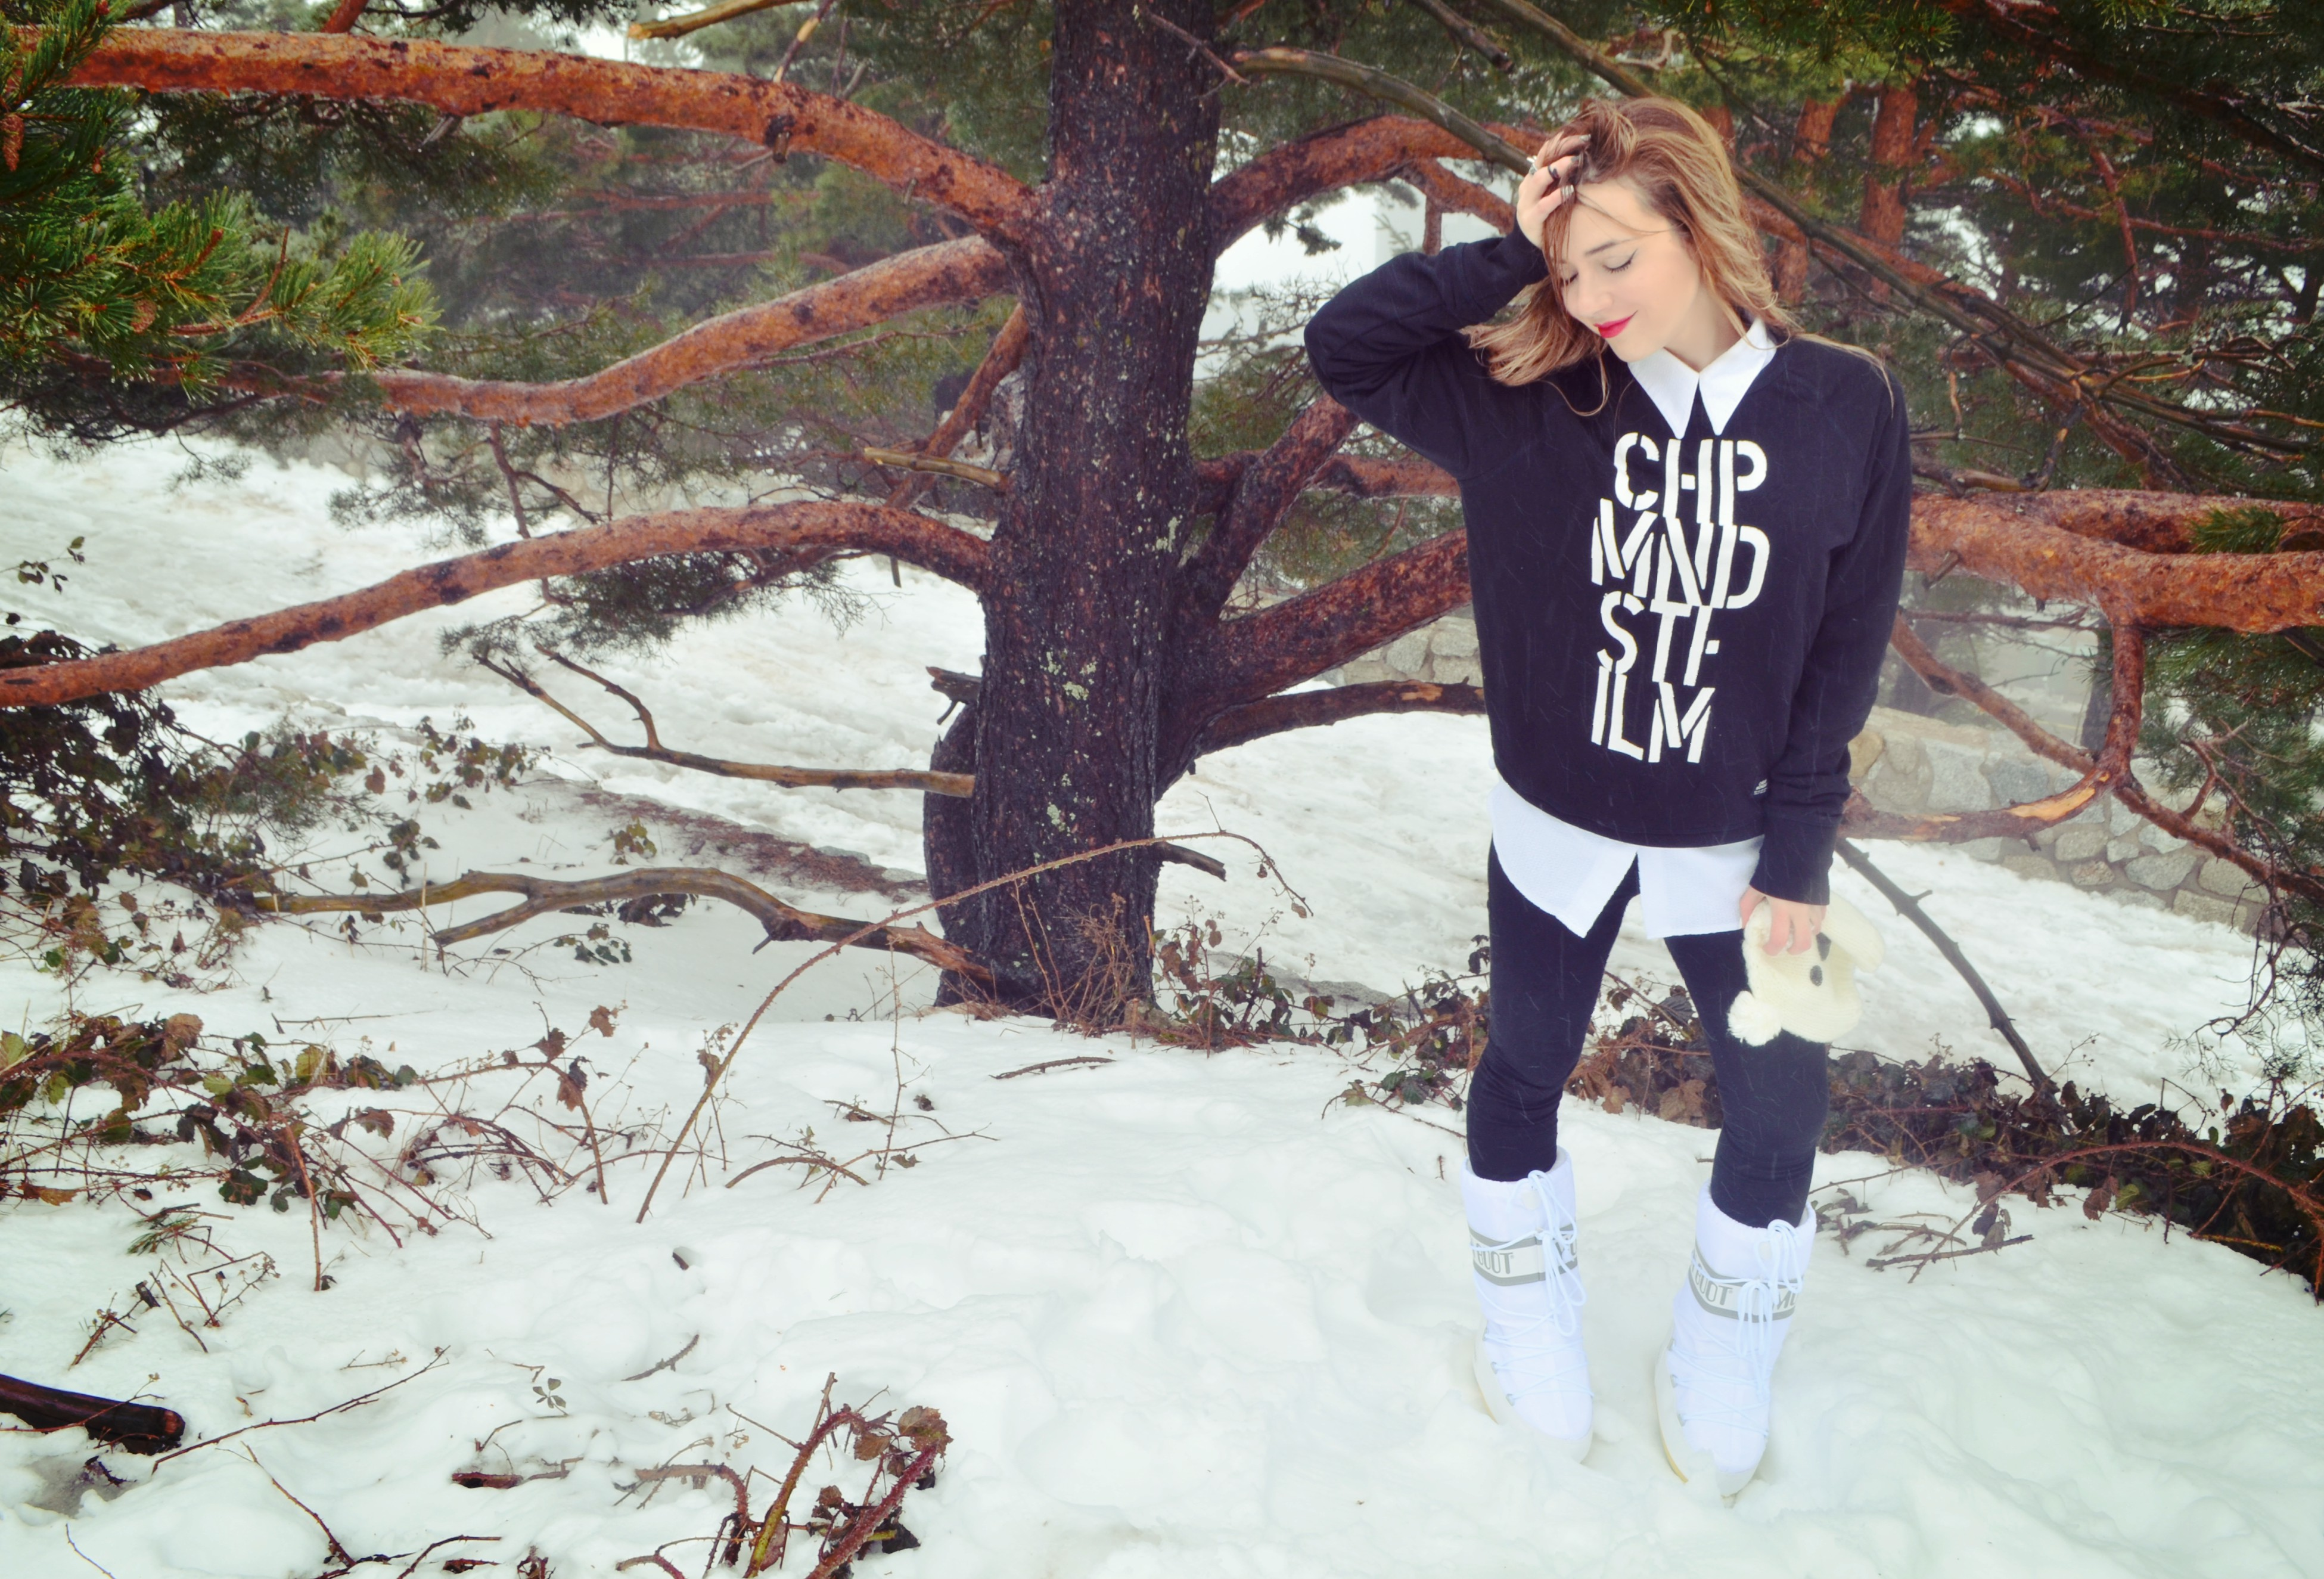 ChicAdicta-fashionista-blog-de-moda-Chic-Adicta-moonboot-snow-look-black-and-white-outfit-botas-de-nieve-PiensaenChic-Piensa-en-Chic